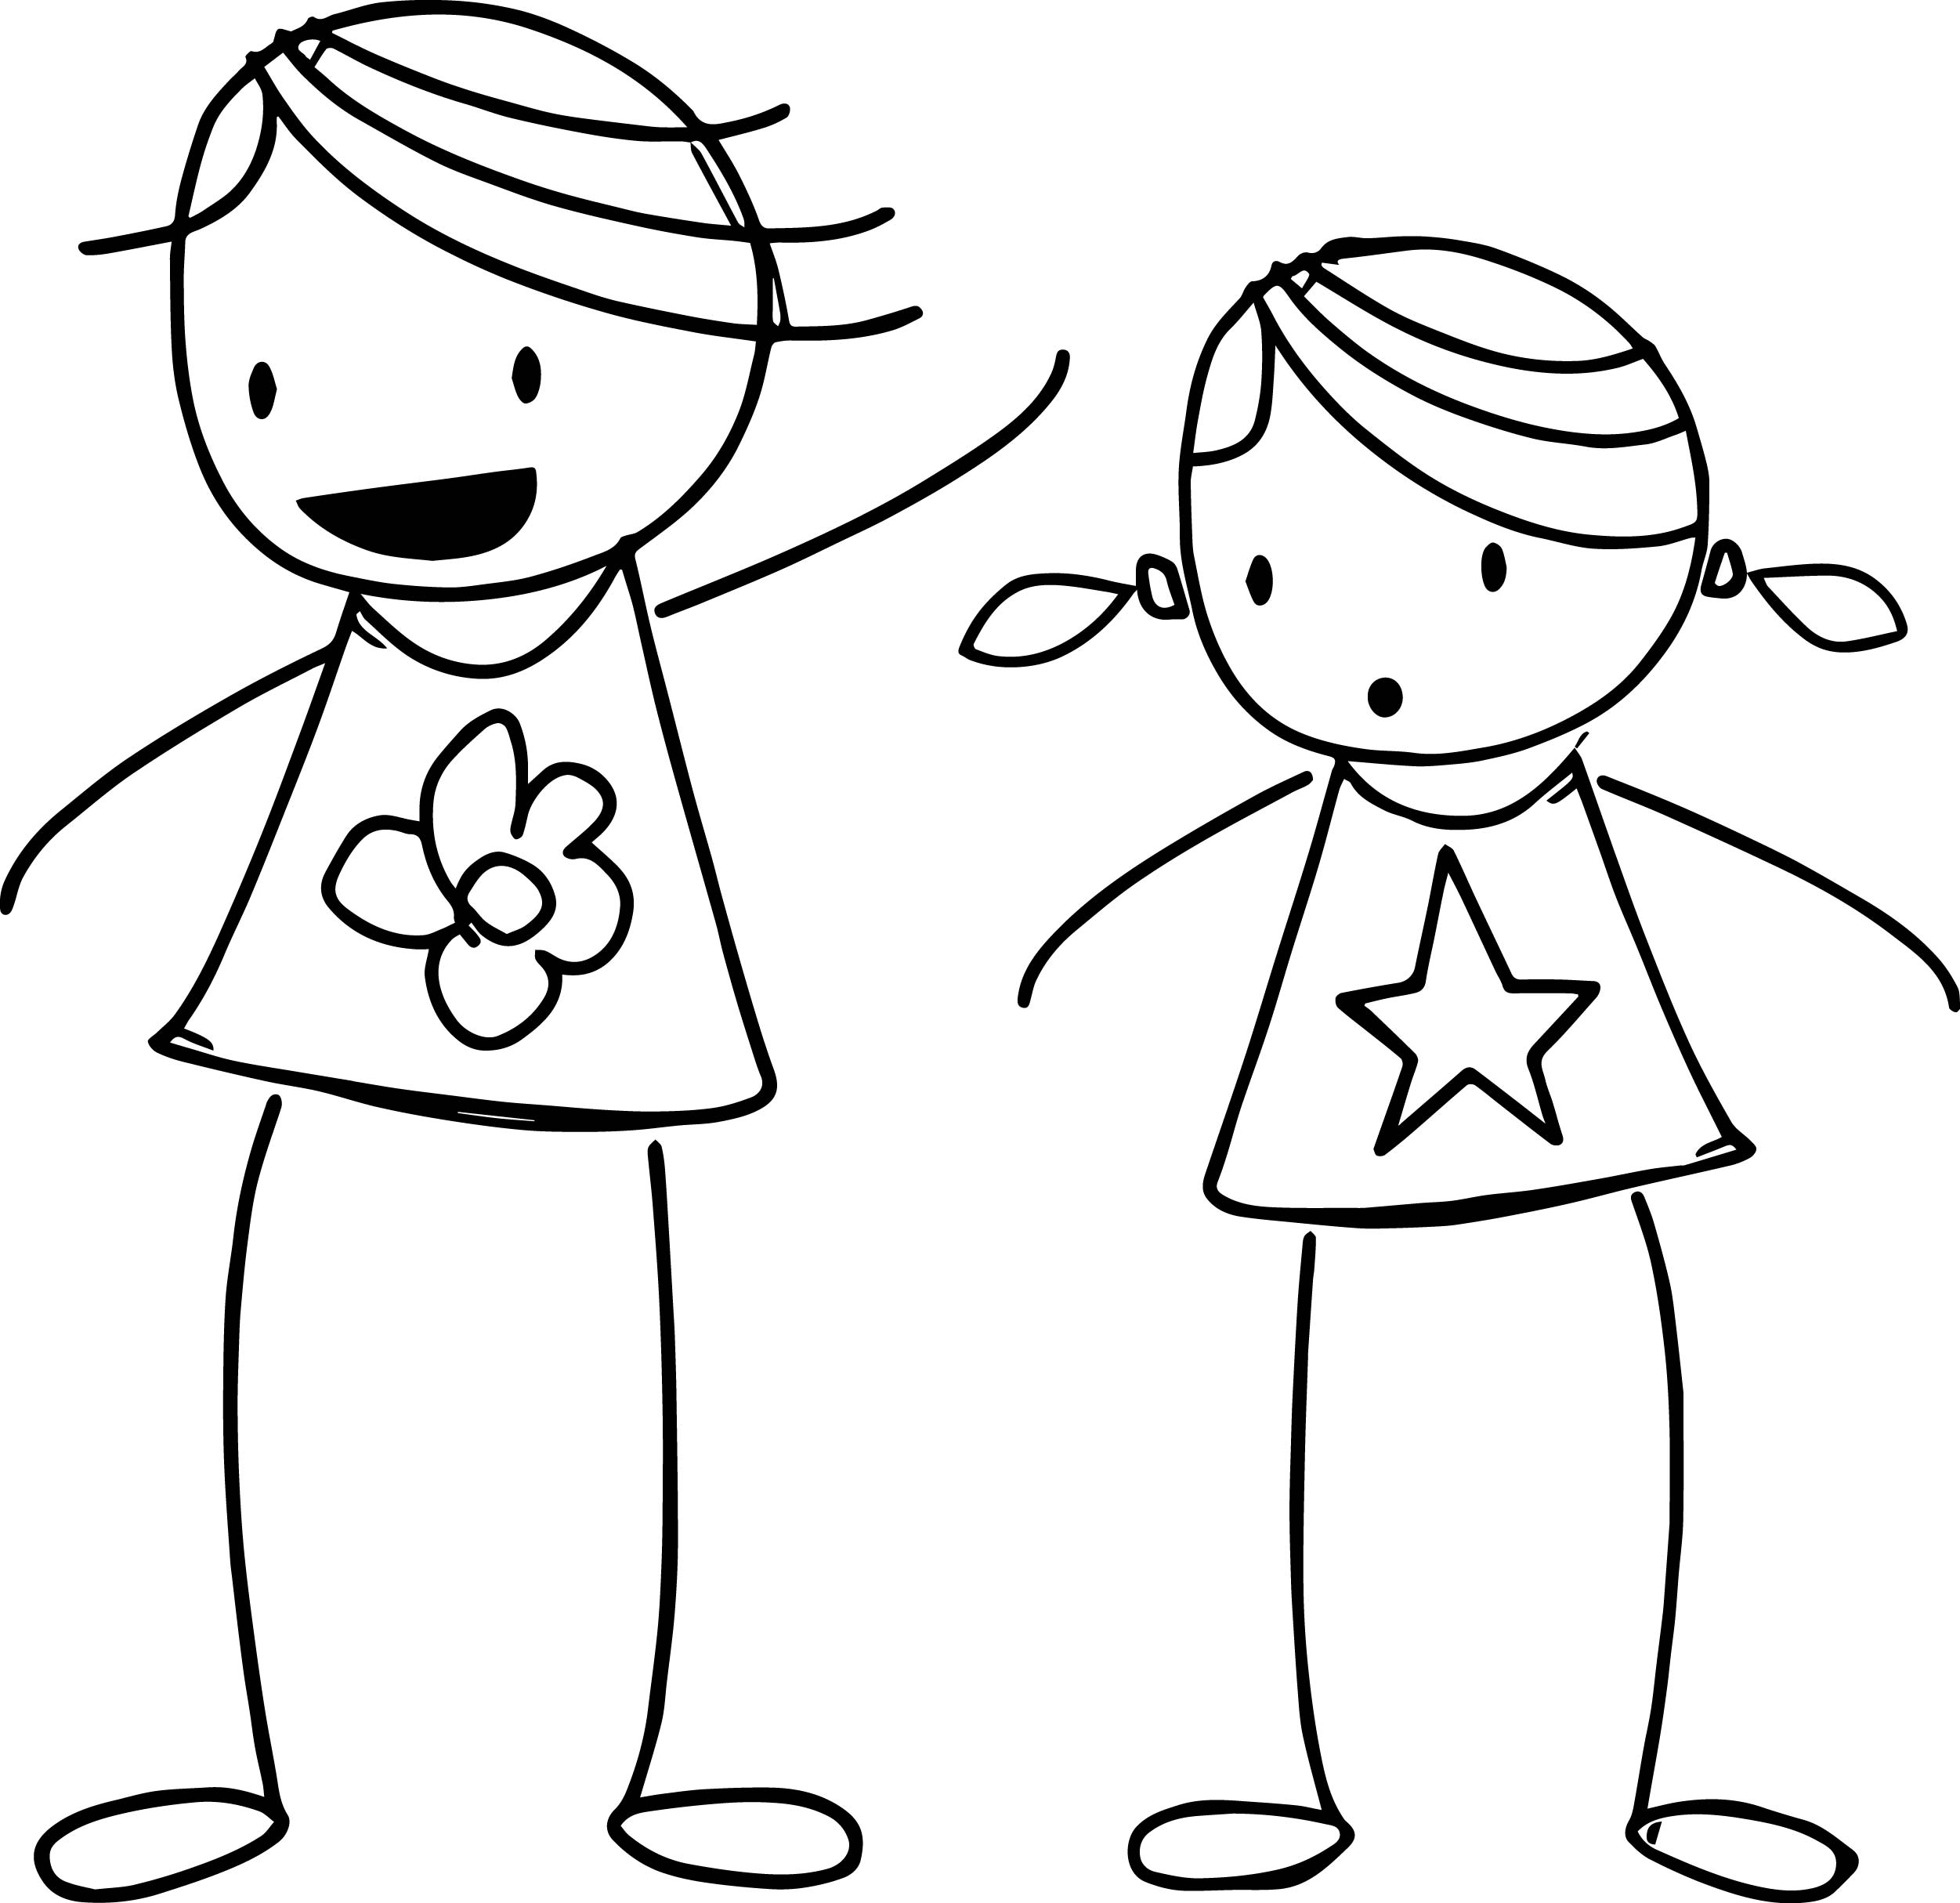 Basic Stick Princess Coloring Page